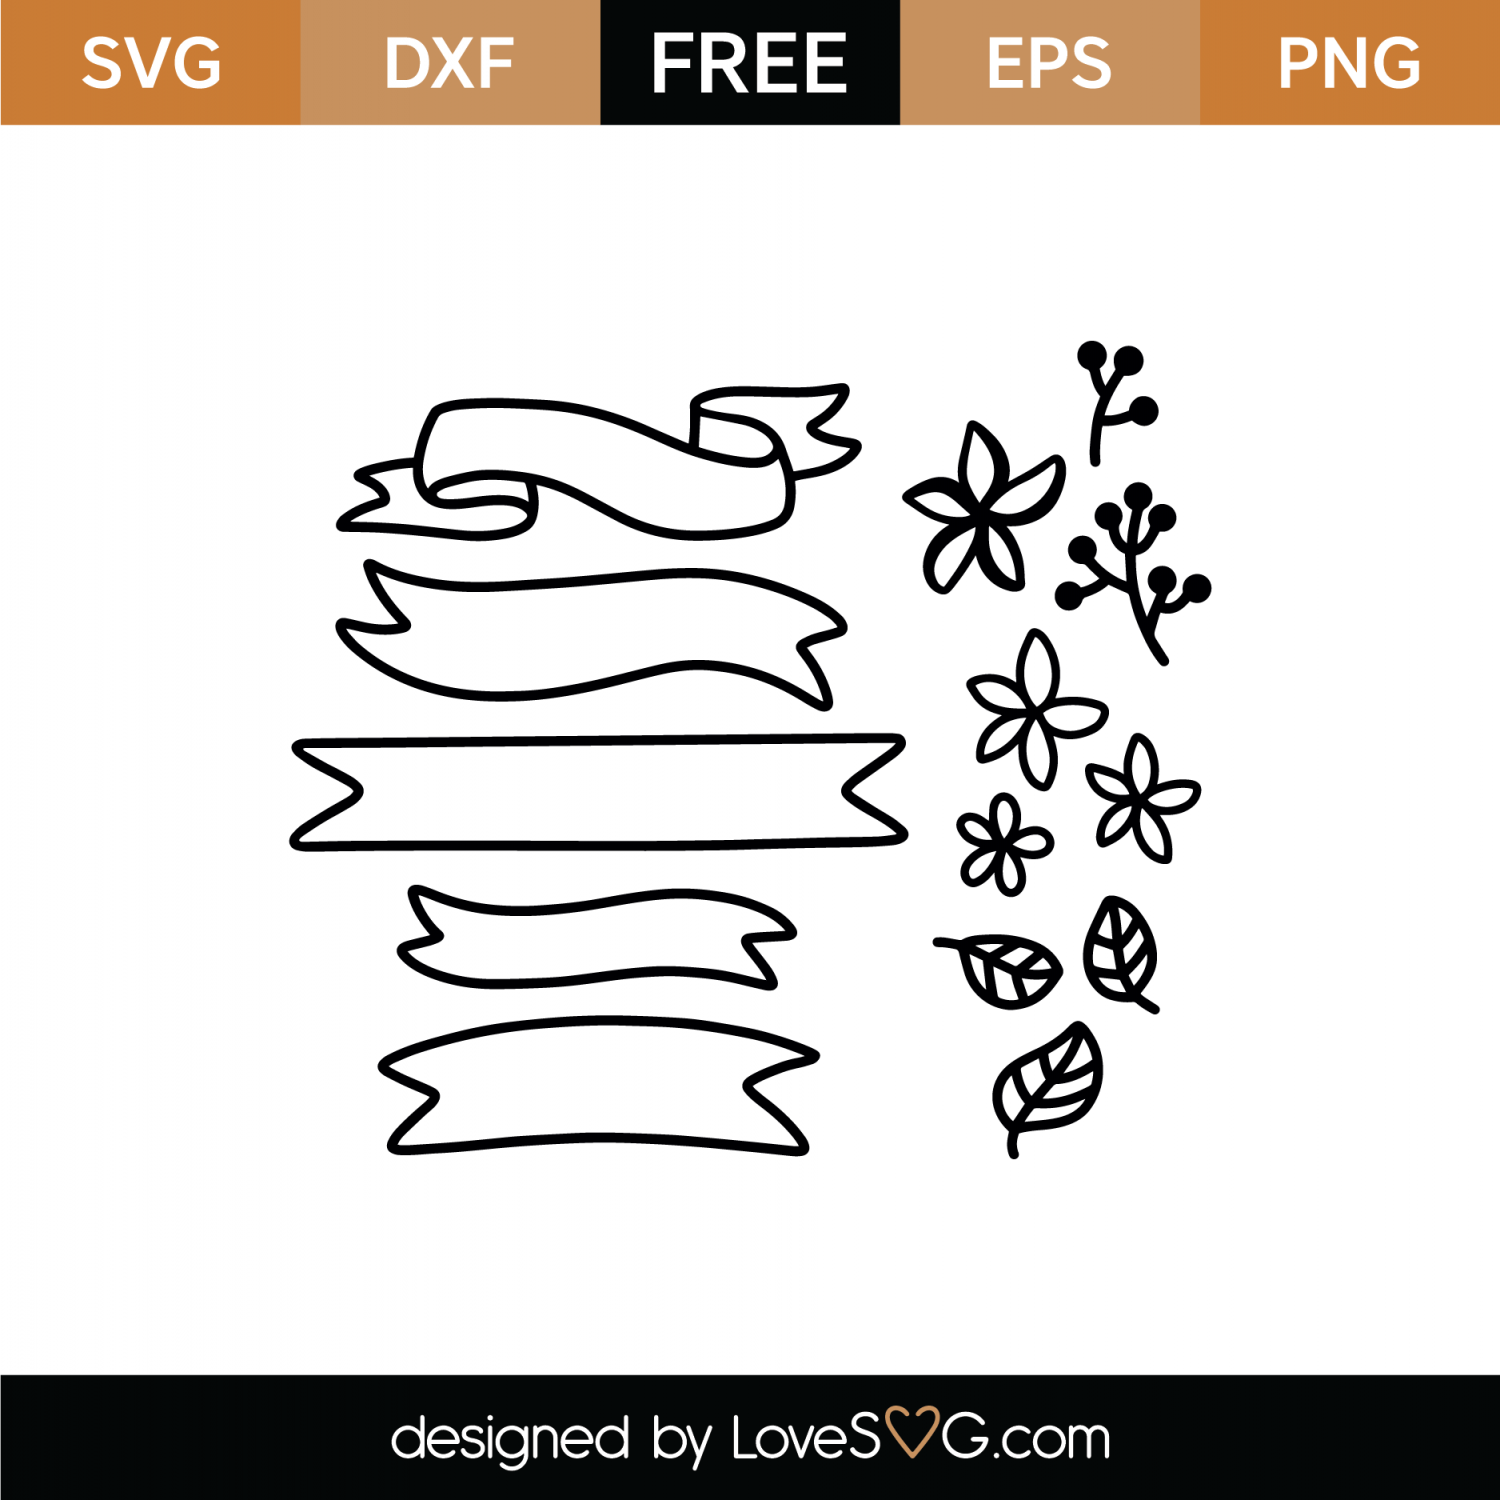 free banner svg #137, Download drawings